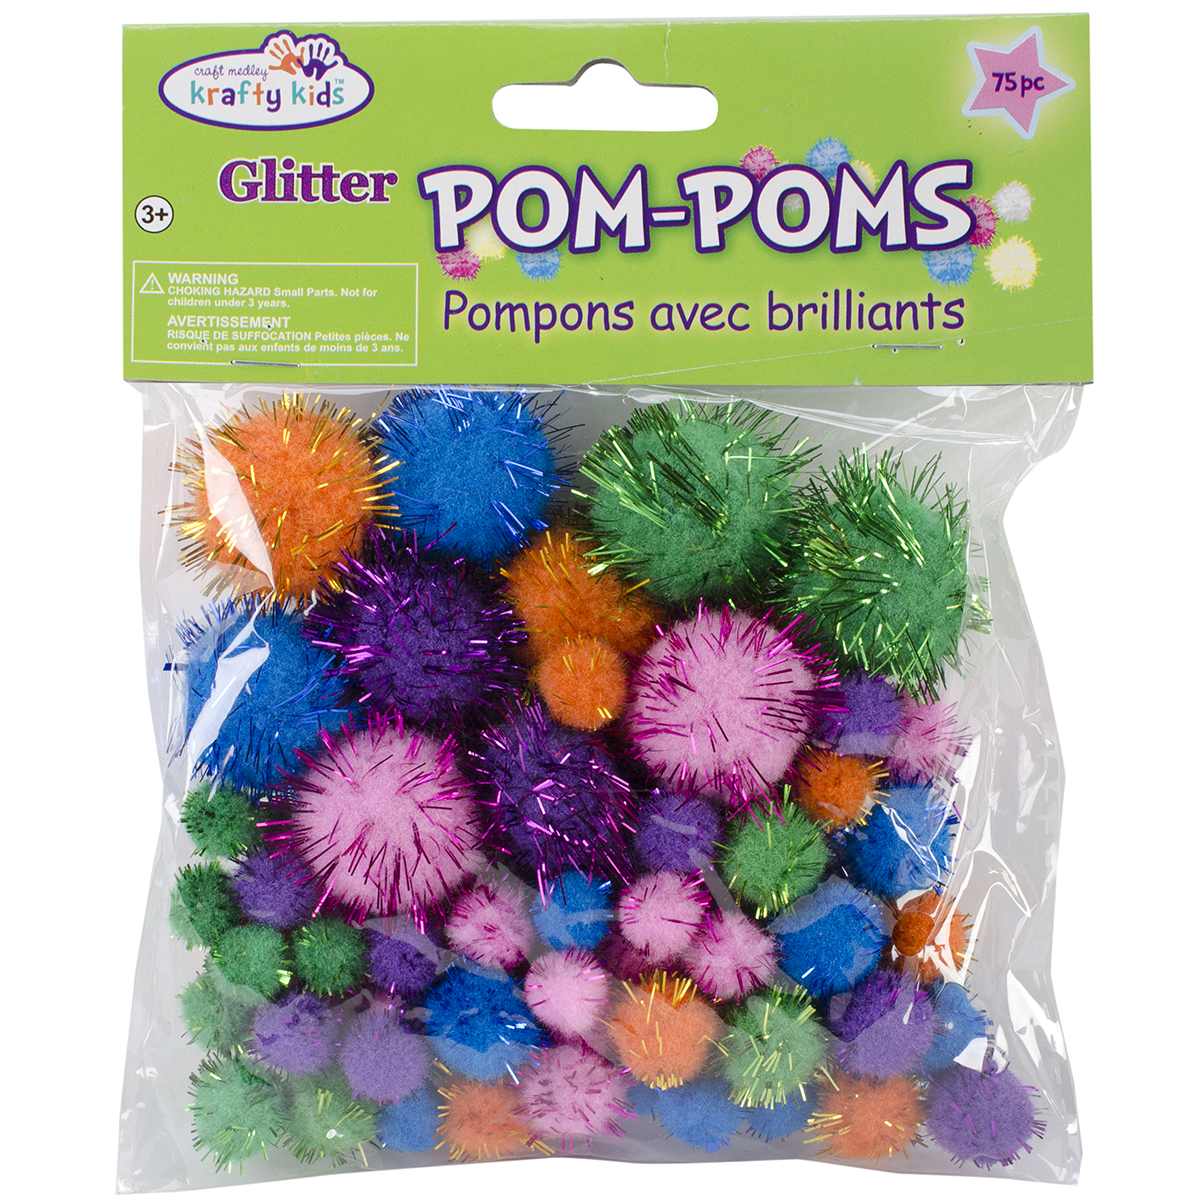 Multicraft Pom-Poms Glitter Pack, Assorted Glamour Colors and Sizes, 75pk